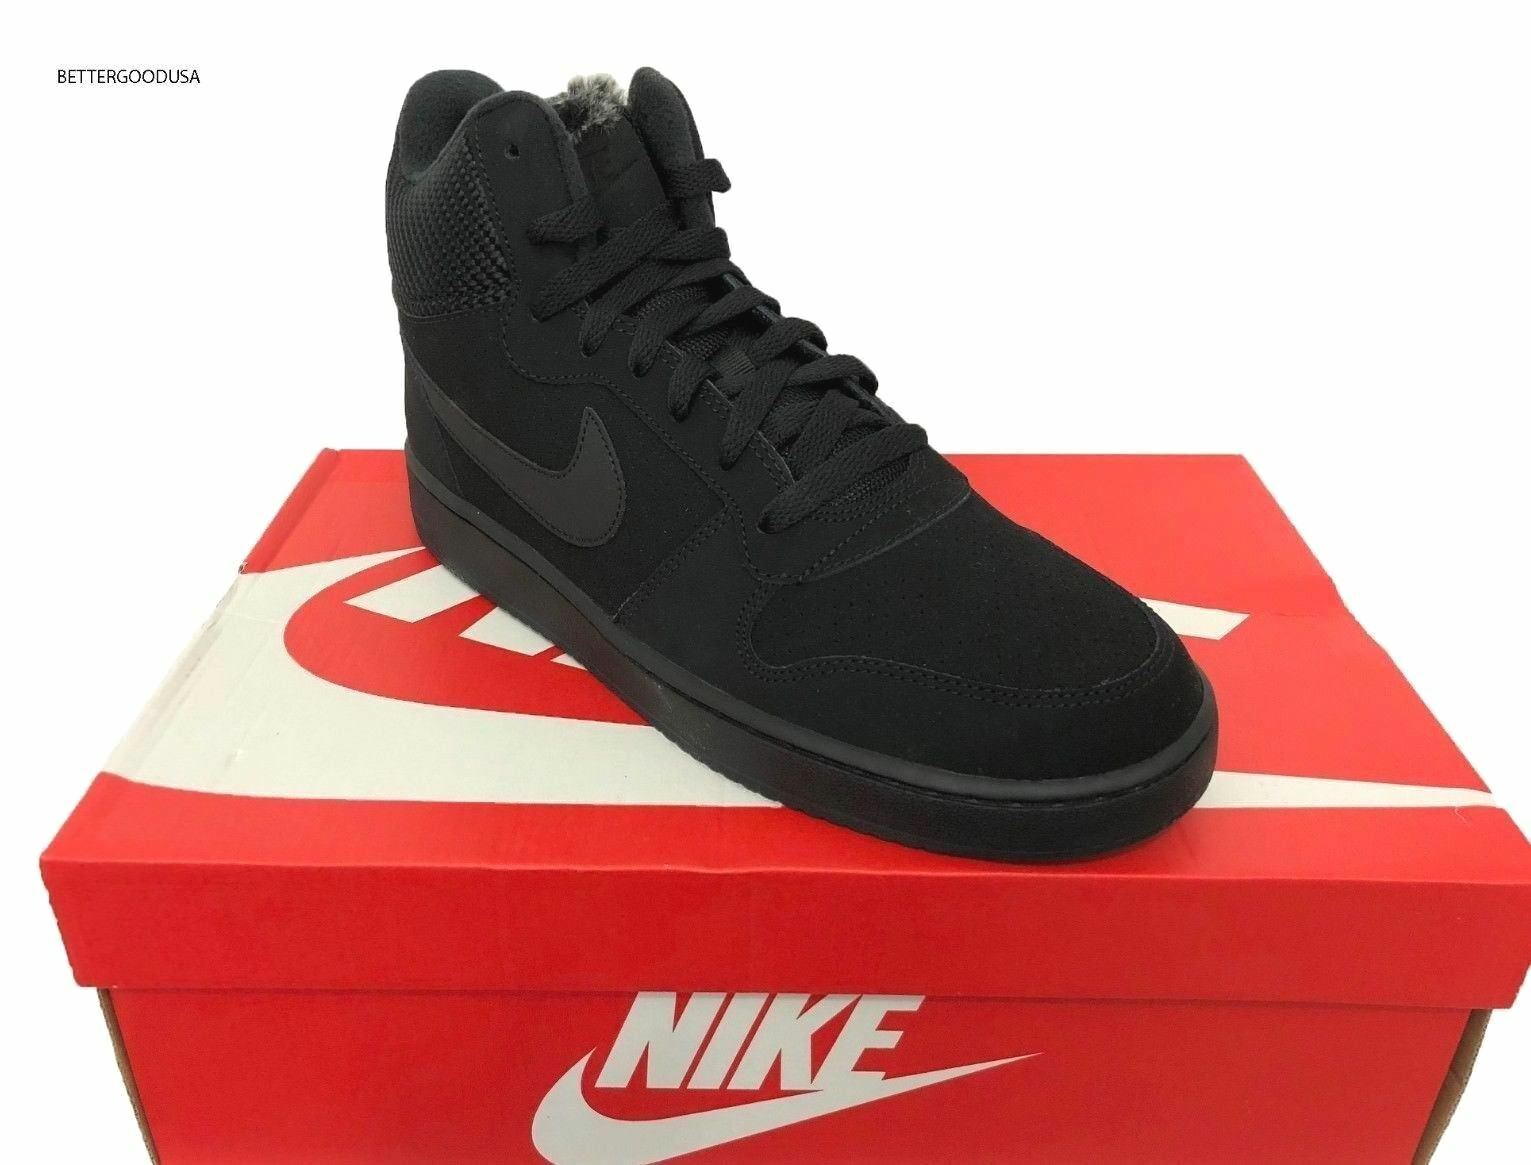 Nike uomini corte borough impermeabile met se impermeabile borough nero scarpe da basket aa0546-001 10,5 aabab1